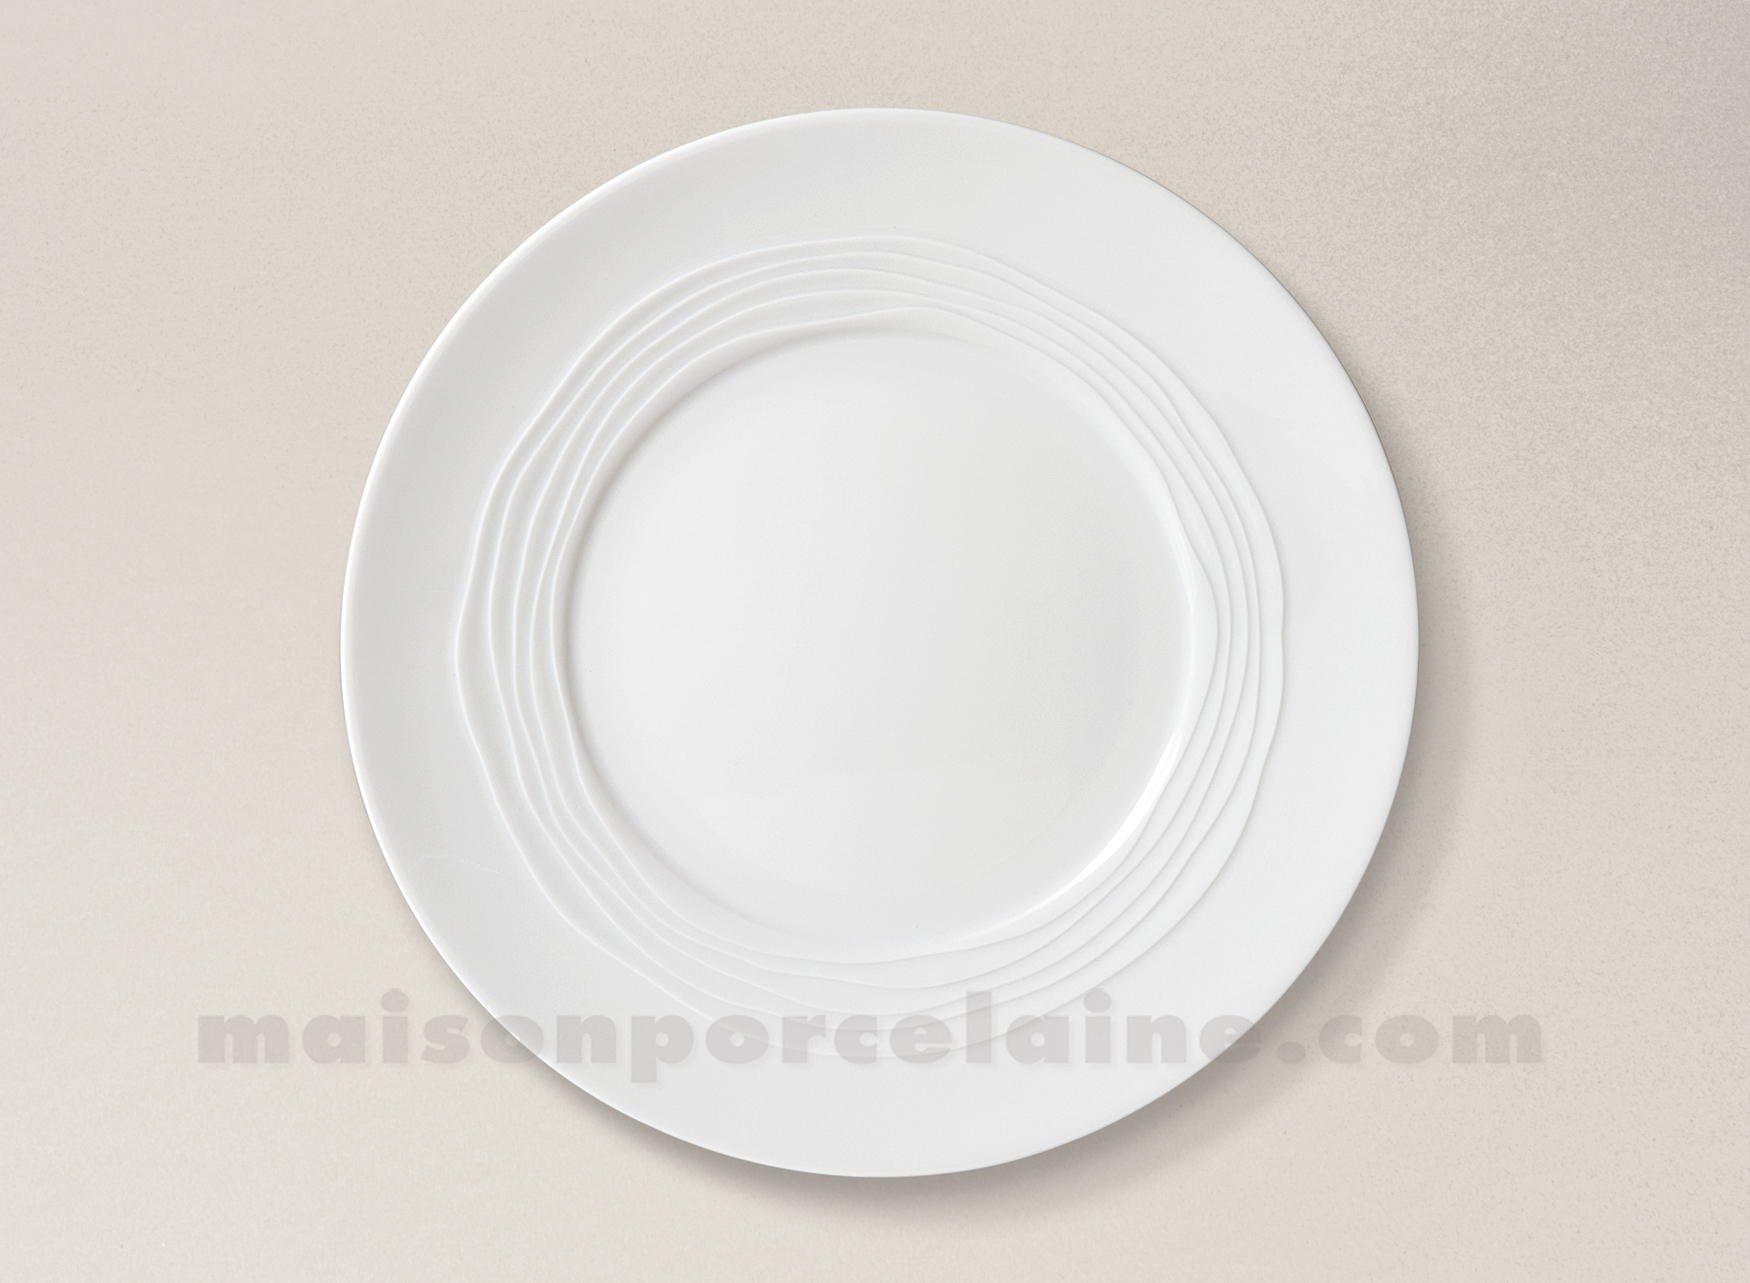 assiette plate limoges porcelaine blanche onde gravee d27 5 maison de la porcelaine. Black Bedroom Furniture Sets. Home Design Ideas